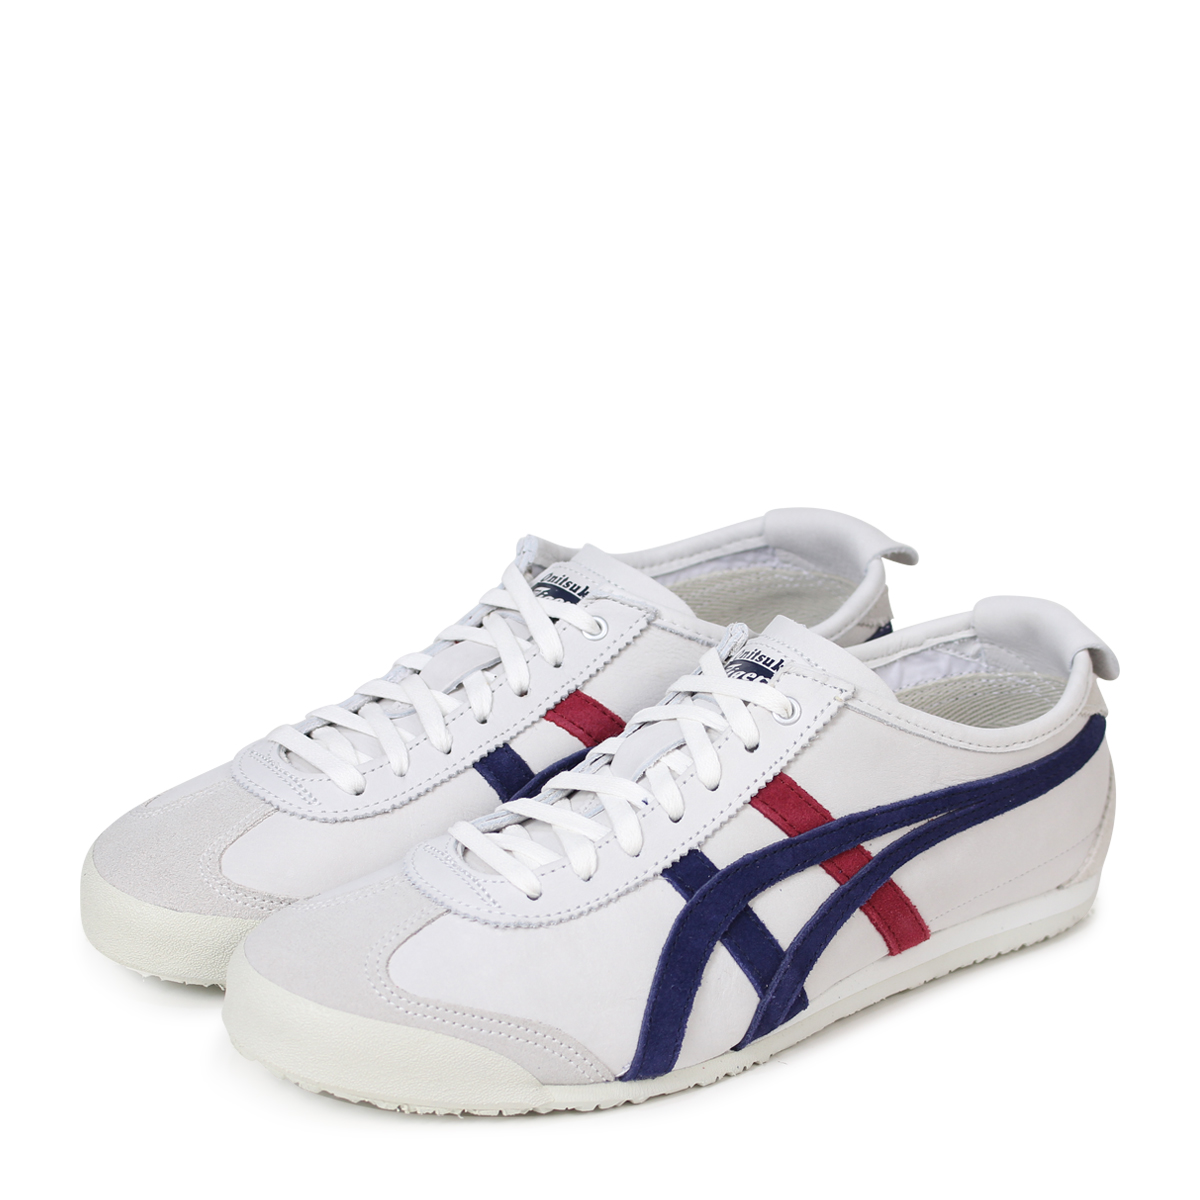 sale retailer afbfe 023ed Onitsuka Tiger MEXICO 66 Onitsuka tiger Mexico 66 men's lady's sneakers  D832L-9058 gray [load planned Shinnyu load in reservation product 5/2 ...